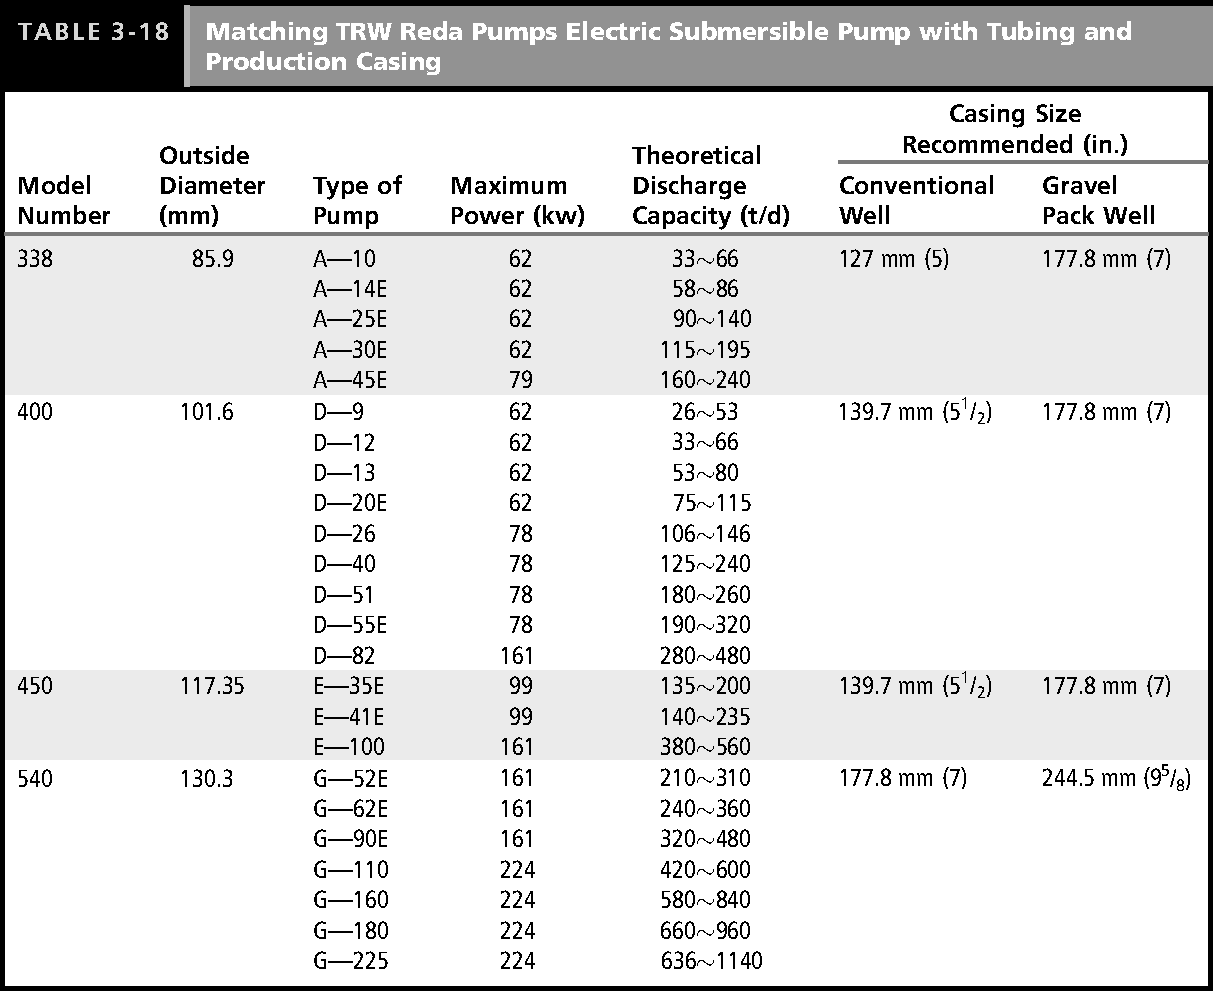 Table 3-18 from Selection and Determination of Tubing and Production